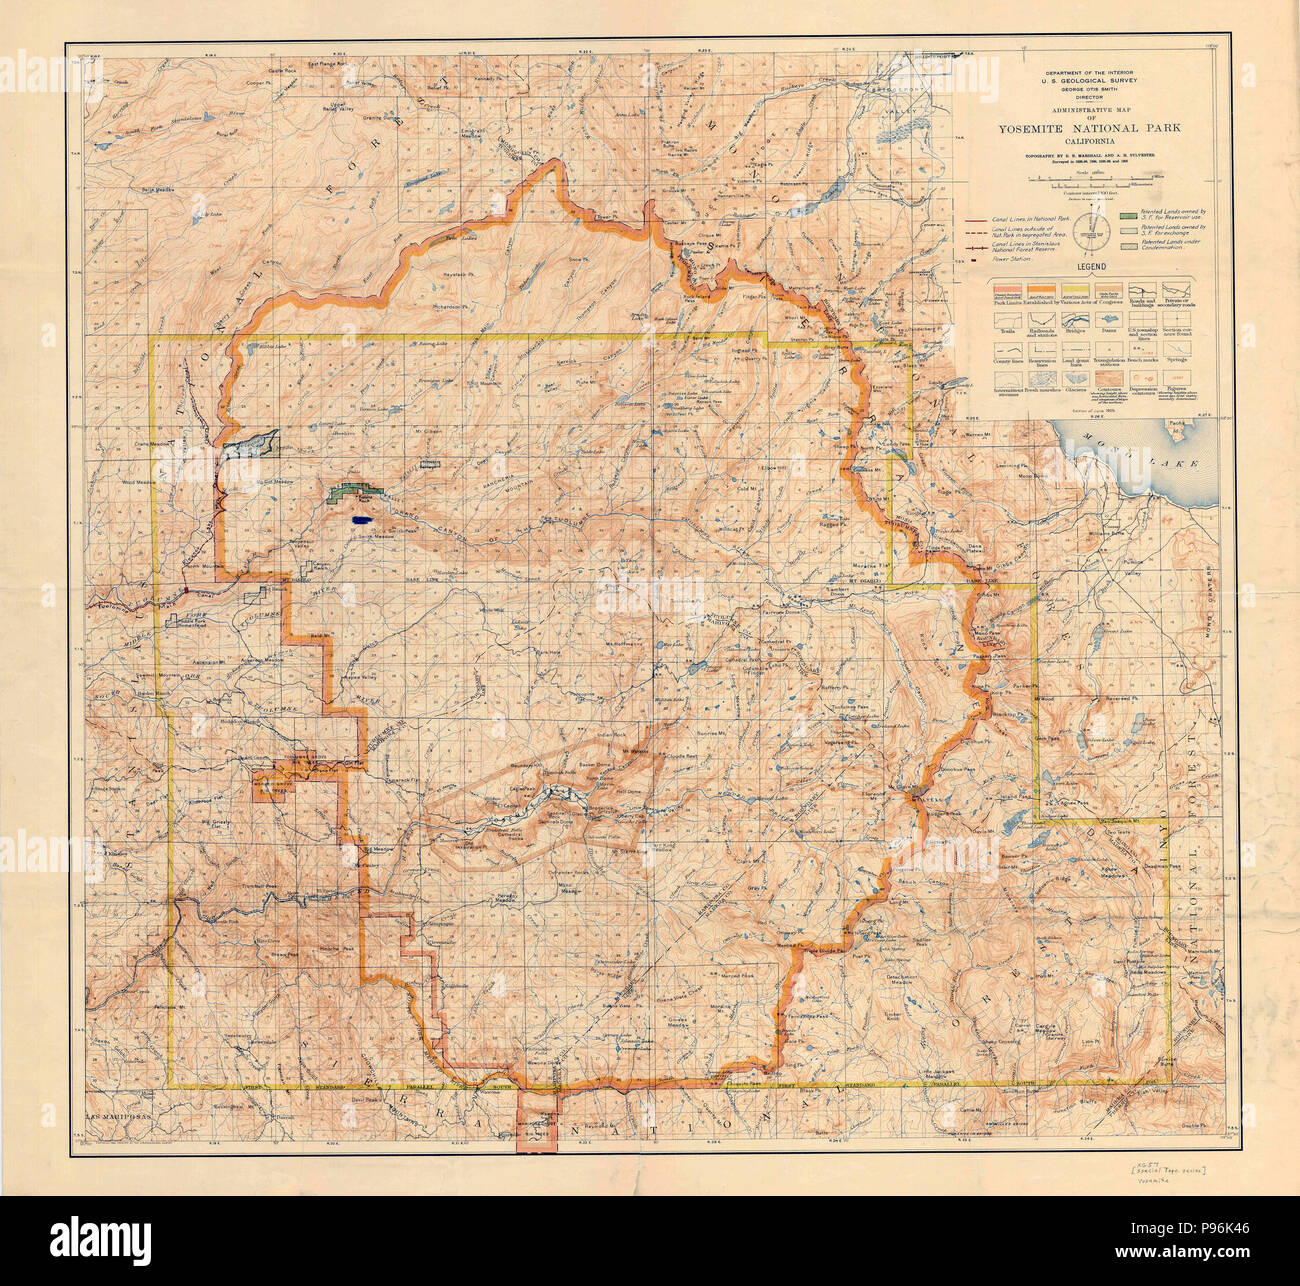 Topographic Map of Yosemite National Park and Vicinity 1909 Stock ...